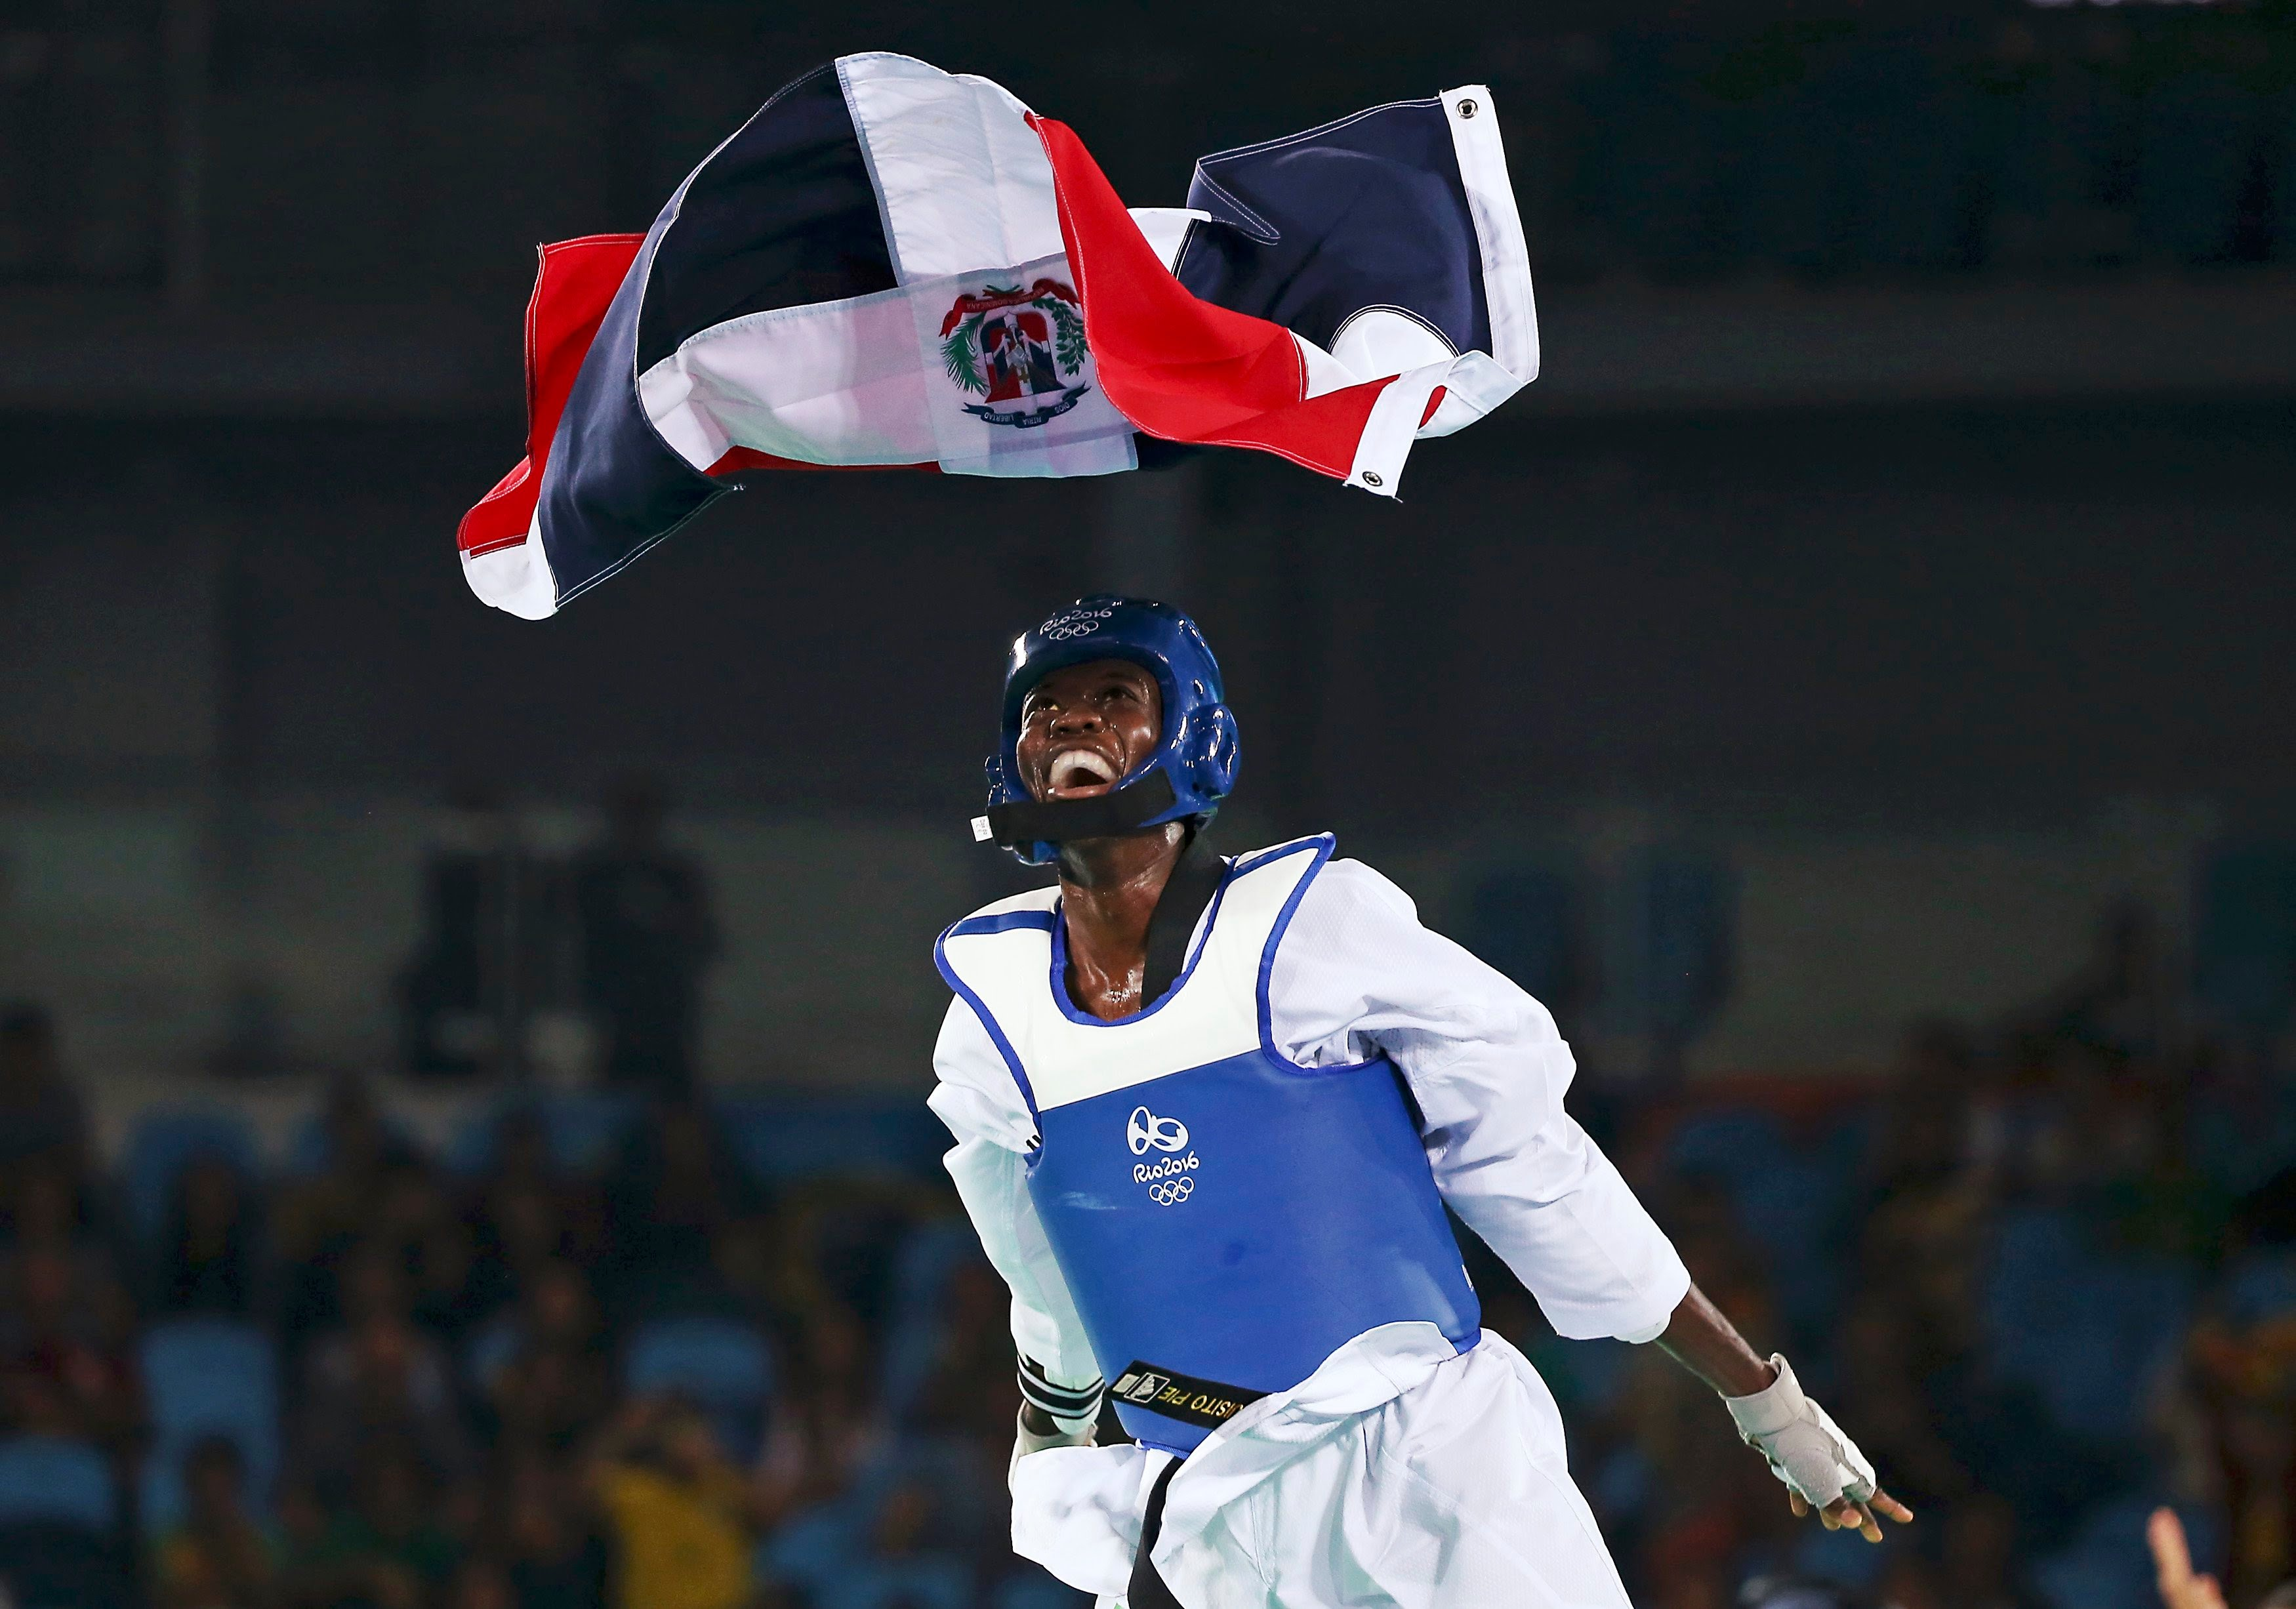 Luisito Pie Won DR Its First Medal in Rio, But His Nationality Is Still Being Questioned